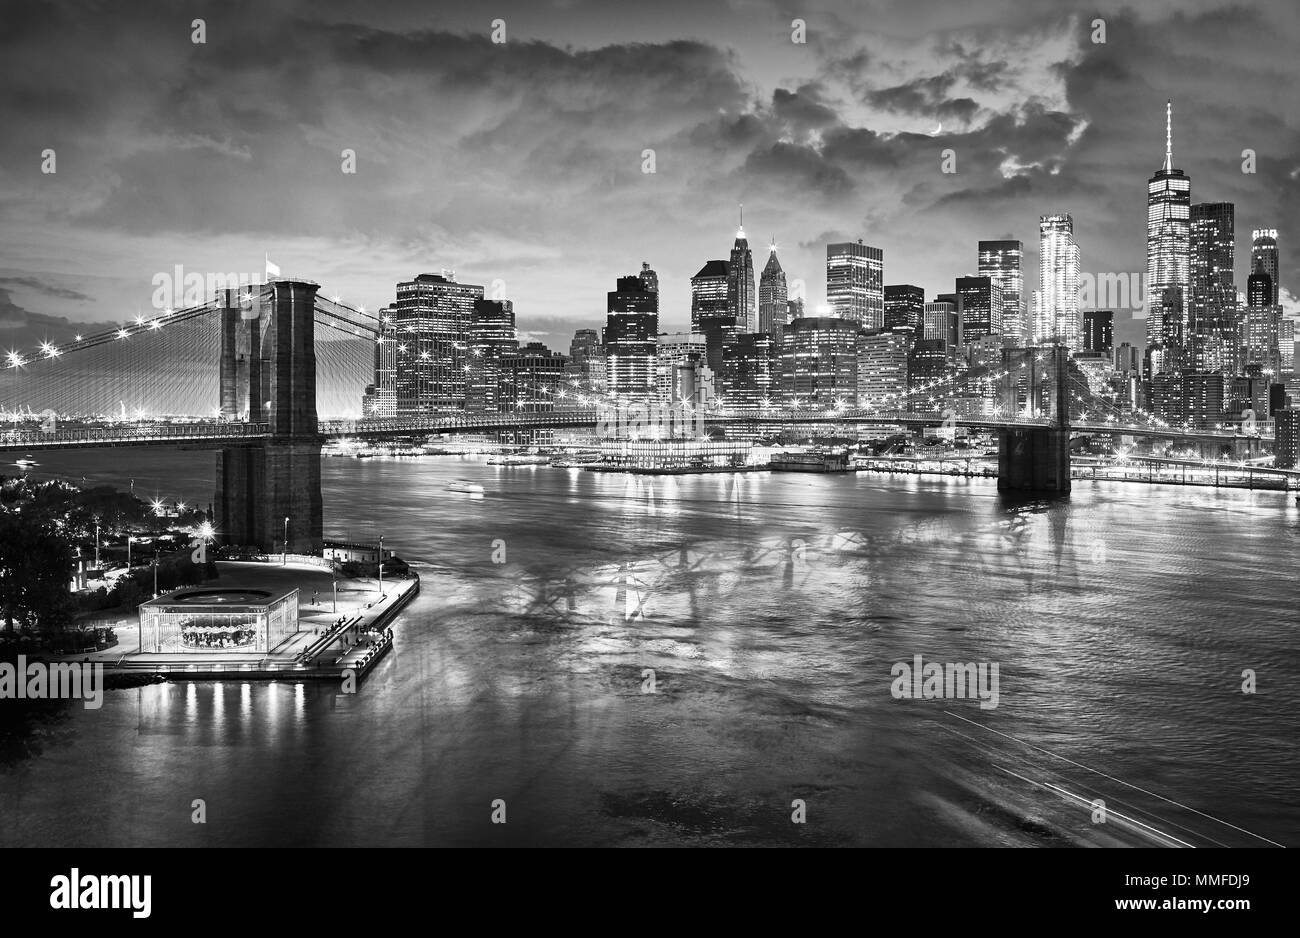 Black and white picture of the Brooklyn Bridge and Manhattan skyline at night, New York City, USA. - Stock Image